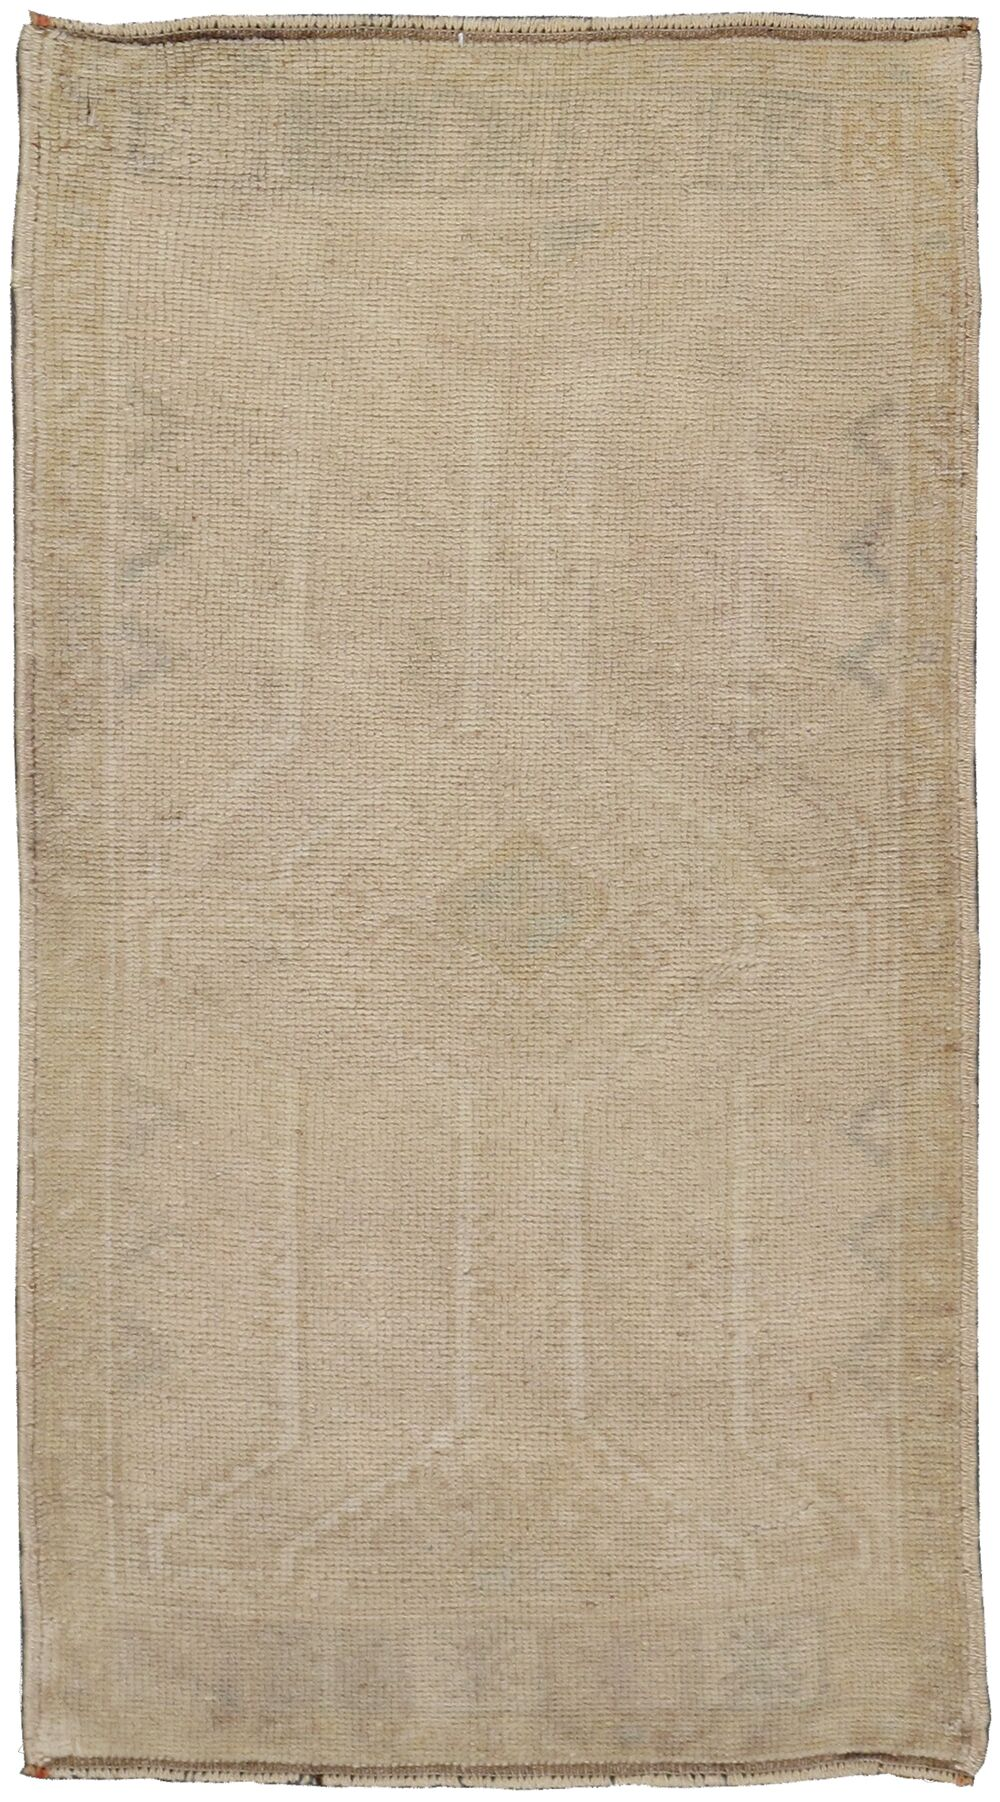 Oushak Lamb's Hand-Knotted Beige Area Rug